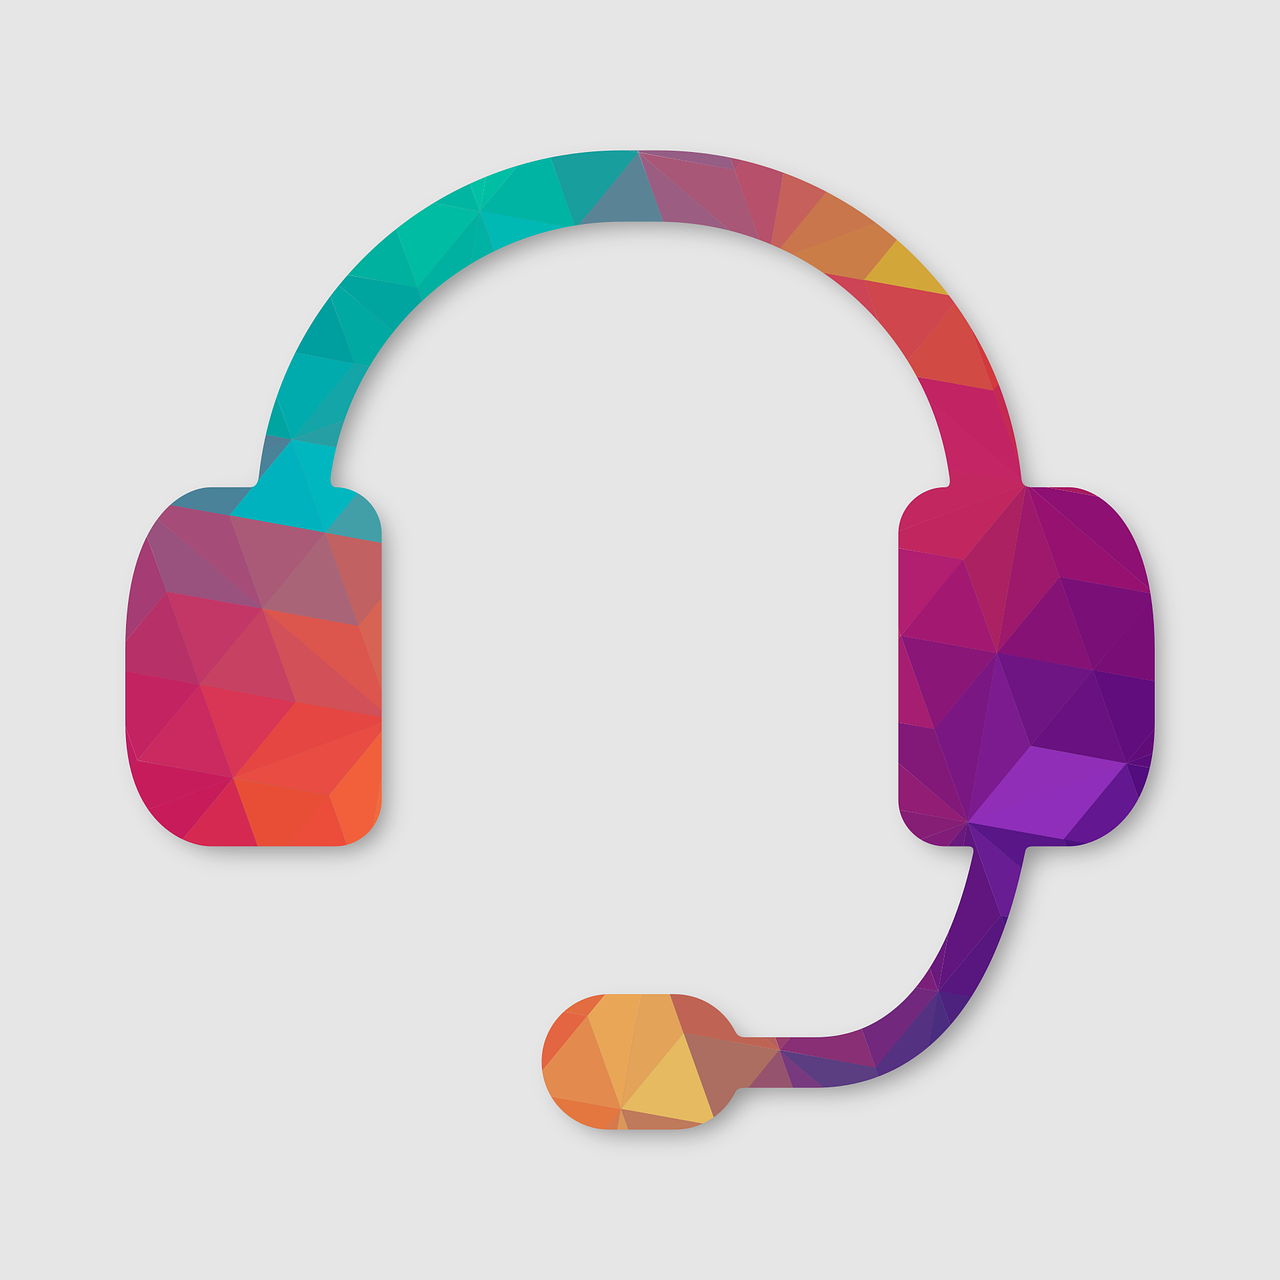 headphones-1935971_1280-1280x1280.png